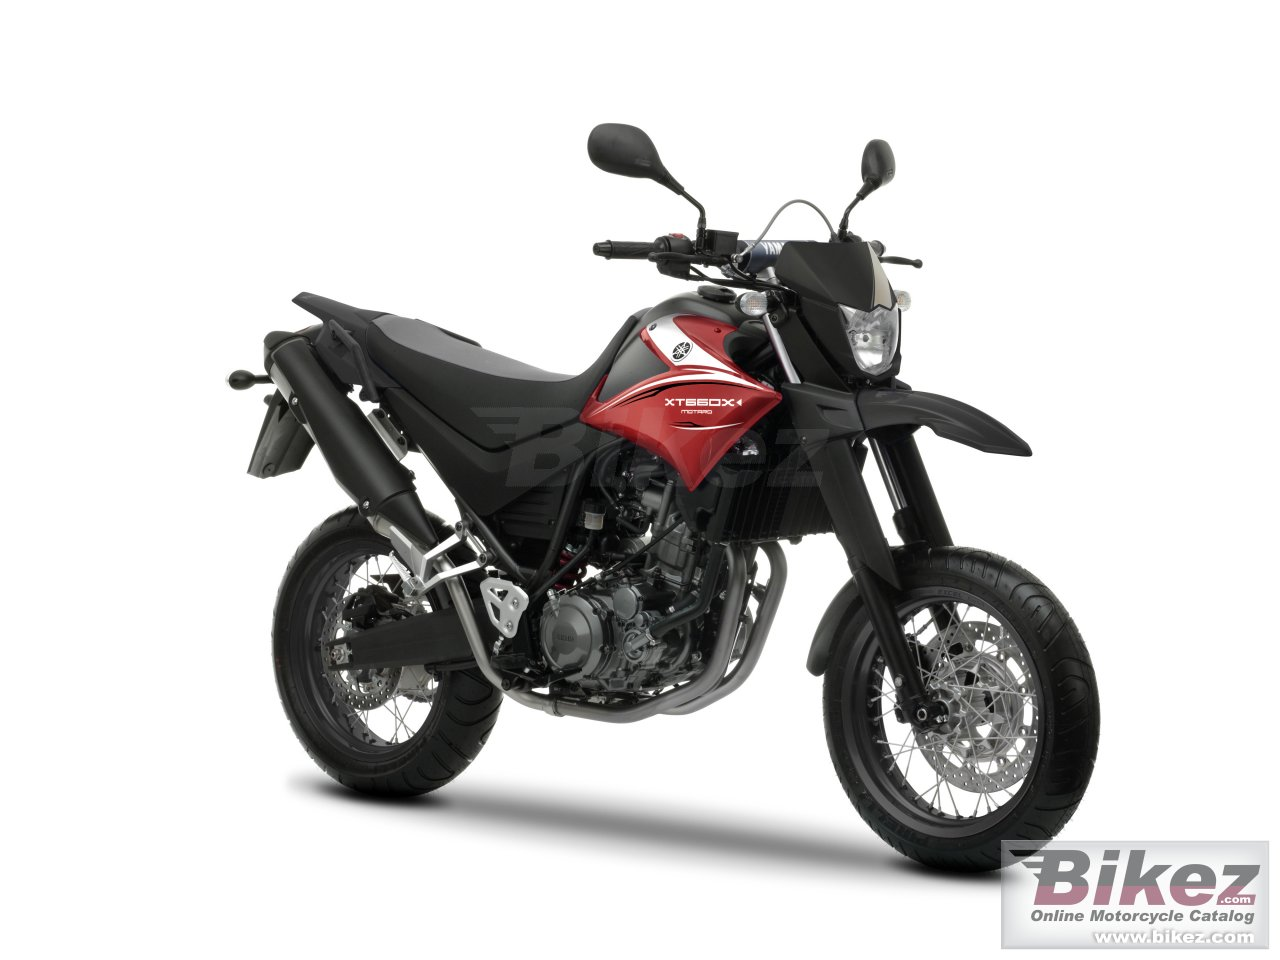 Big Yamaha xt 660x picture and wallpaper from Bikez.com